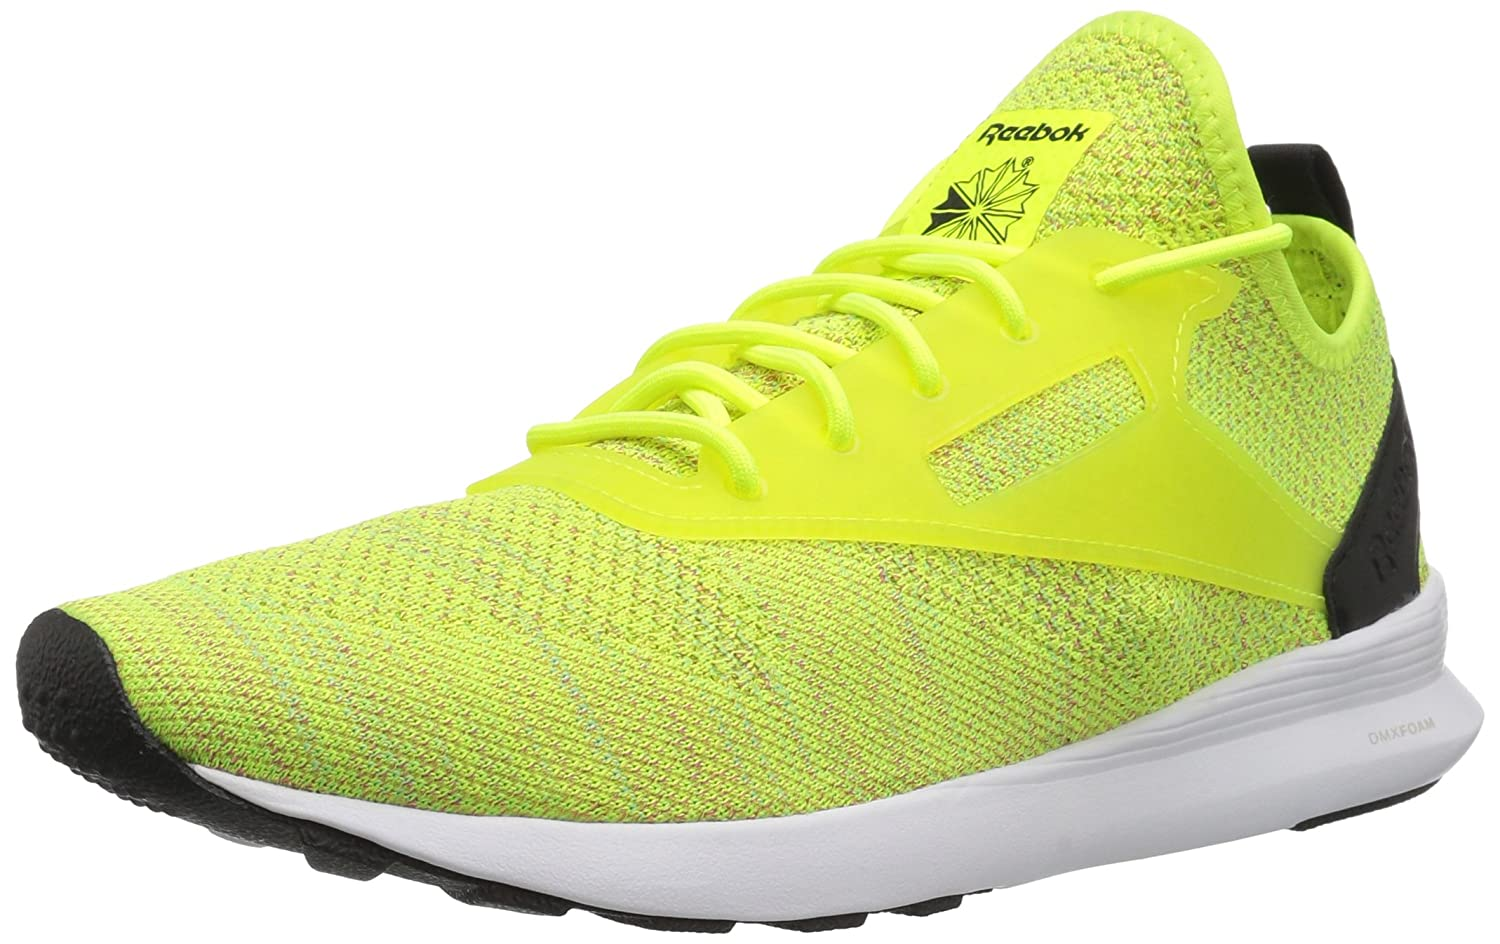 [リーボック] RUNNER スニーカー ZOKU RUNNER HM HM B01NBTU493 Solar ZOKU Yellow/Neon Blue/So 7 M US 7 M US|Solar Yellow/Neon Blue/So, バリ雑貨MANJA:fdcdd549 --- cooleycoastrun.com